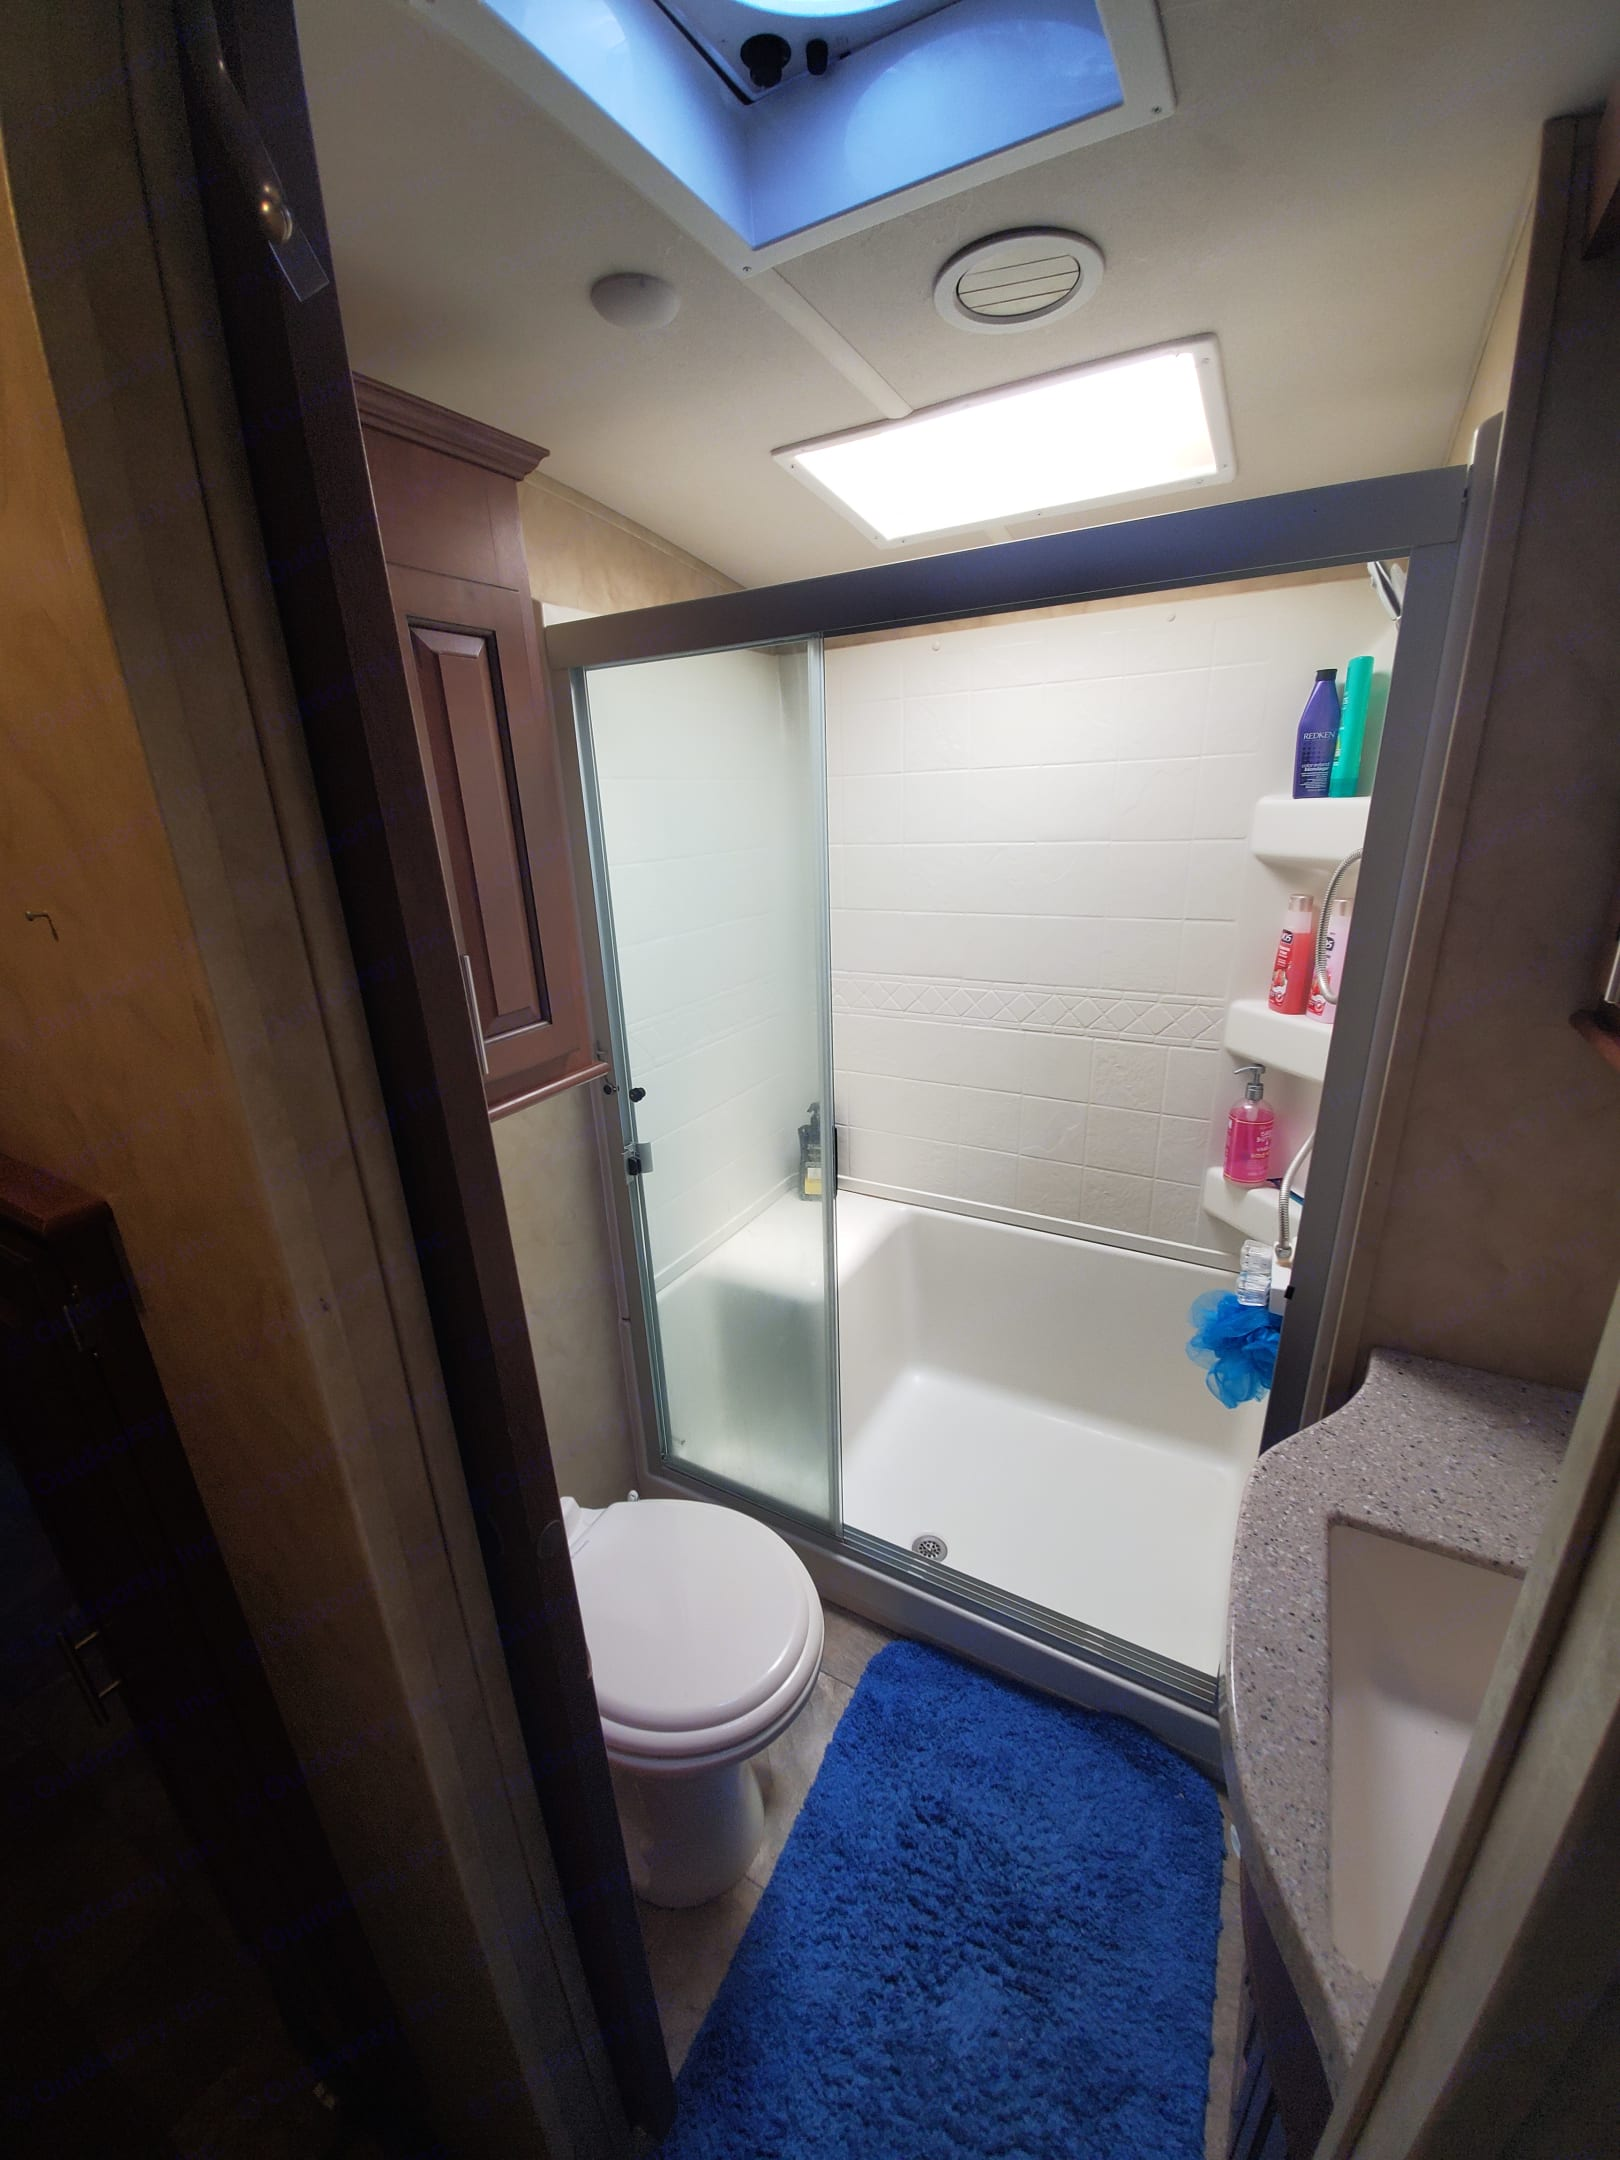 I love the open wide shower doors. Makes getting in & out super easy. . Forest River Cedar Creek Silverback 2014